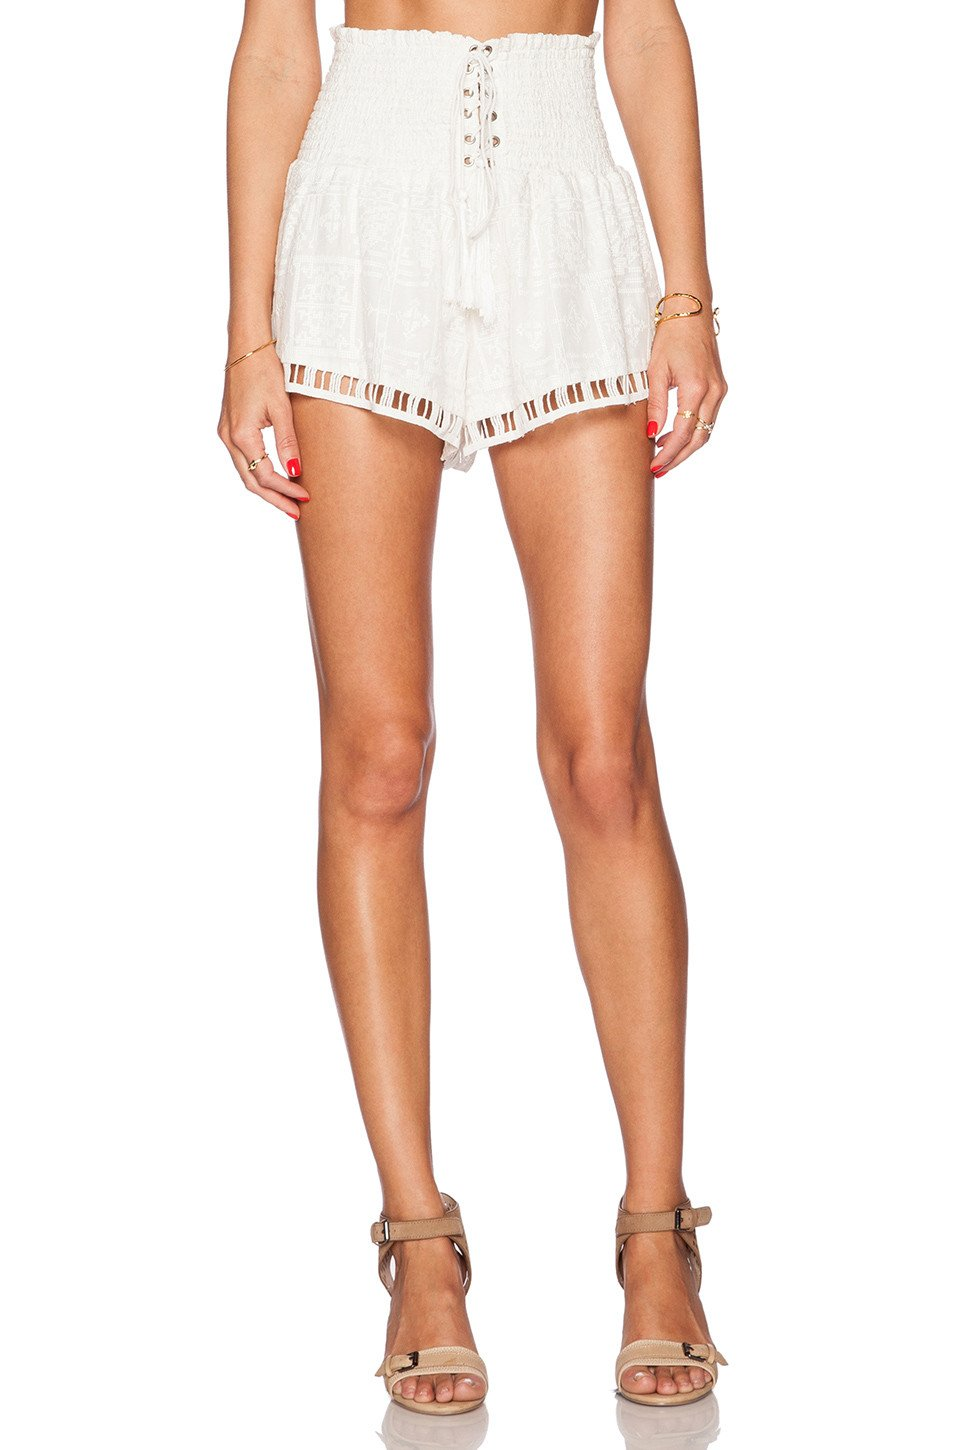 Lady In White Short - Kustom Label - 1